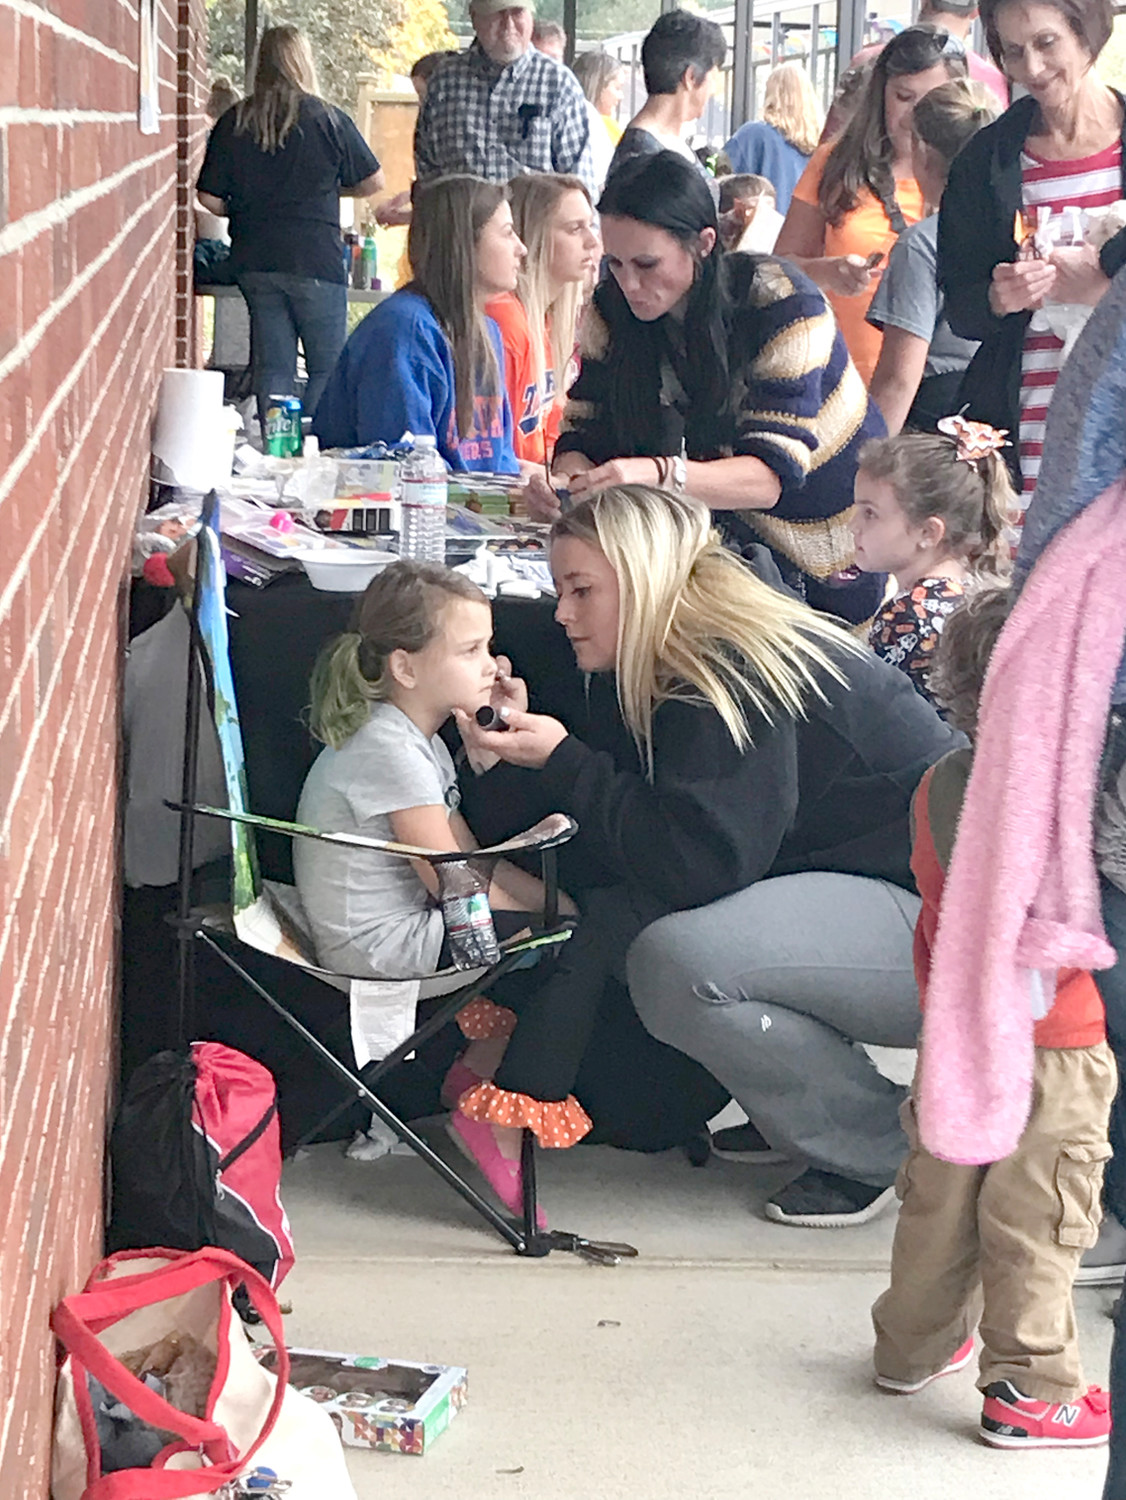 PIPER MYERS, a kindergartener at Michigan Avenue Elementary, gets her face painted during her school's recent Fall Festival.